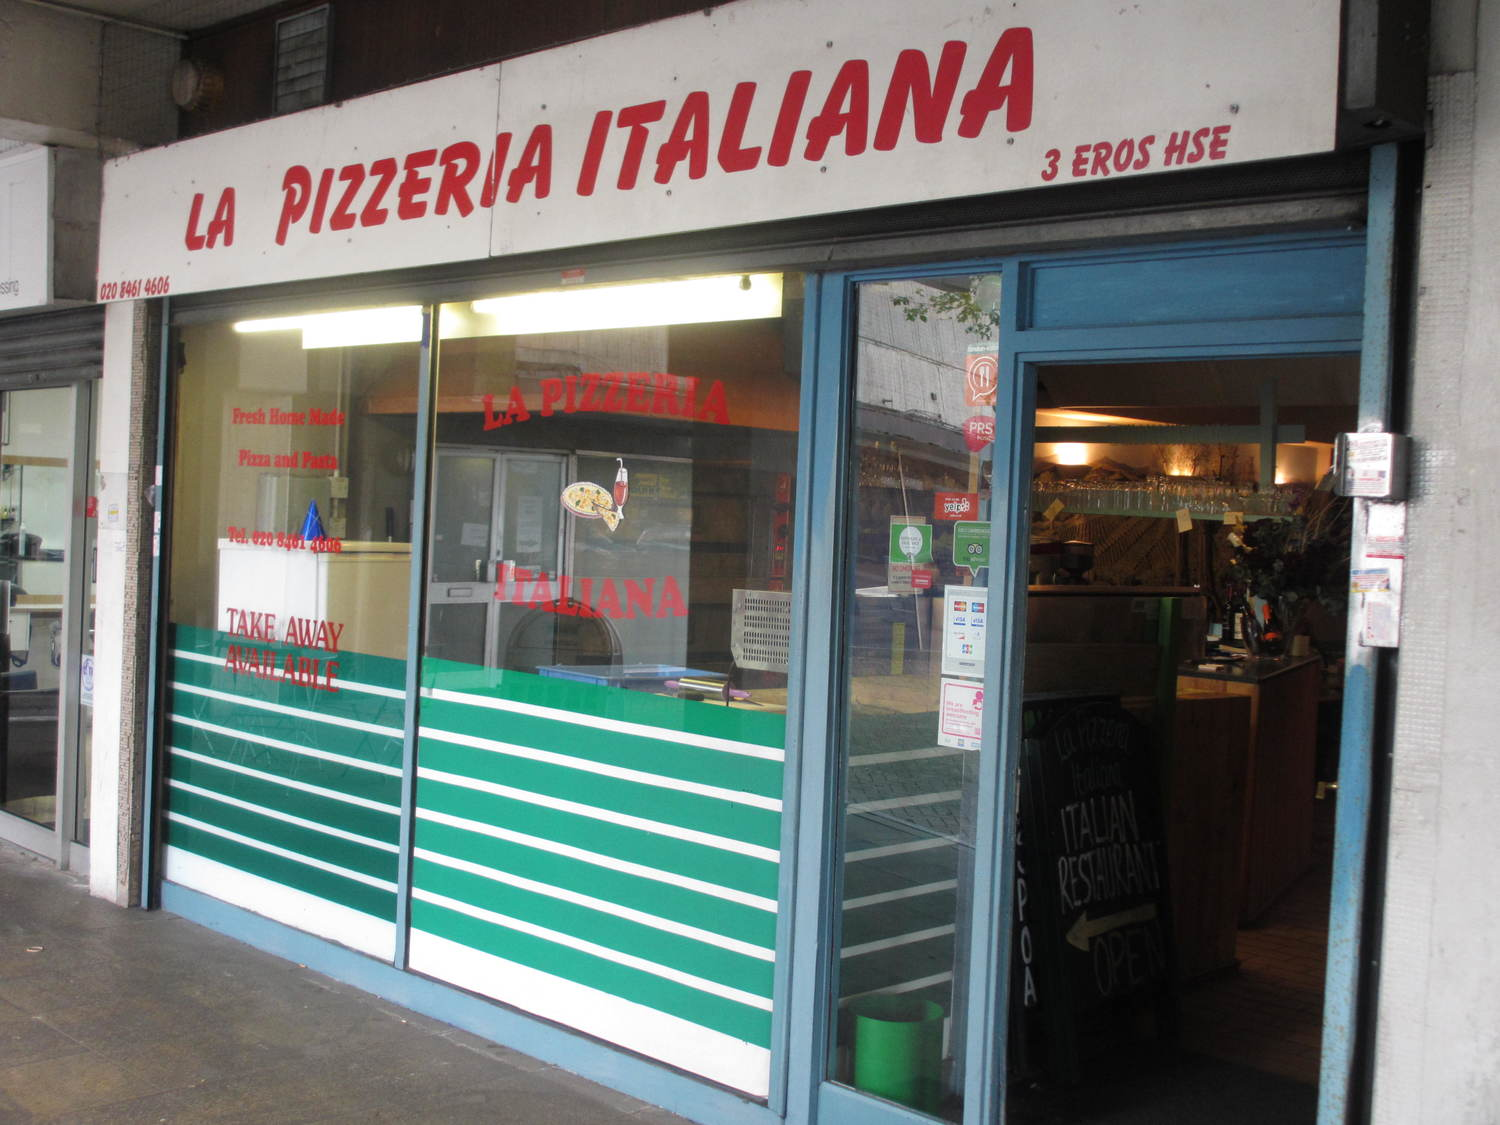 La Pizzeria Italiana In Catford South London Club.